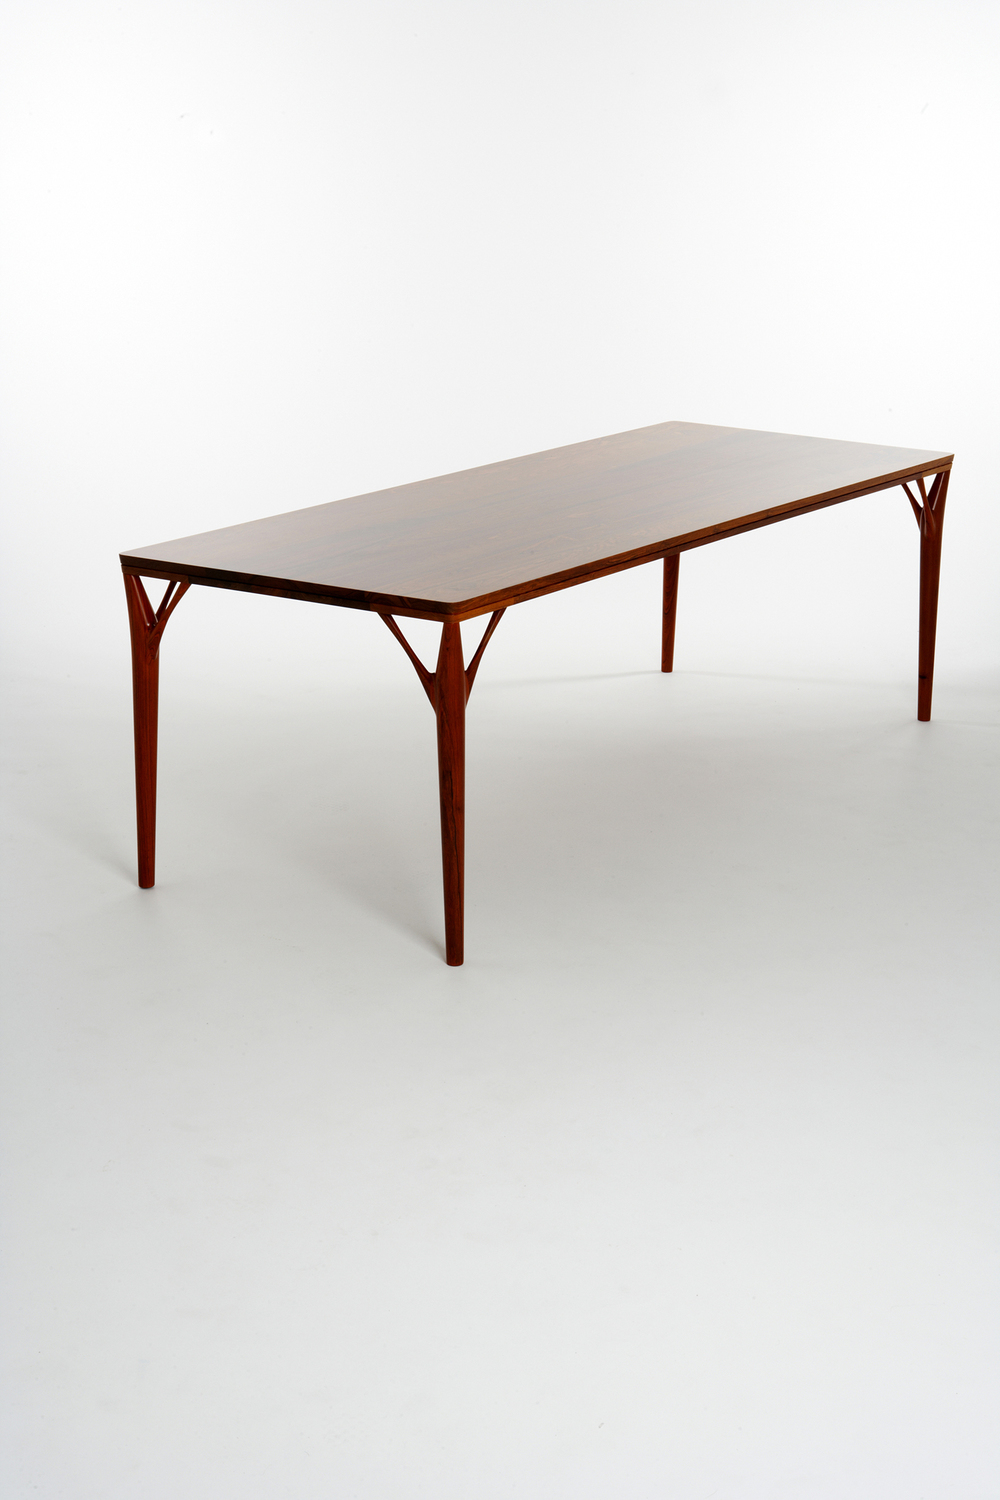 PD55 dining table2_resize.jpg